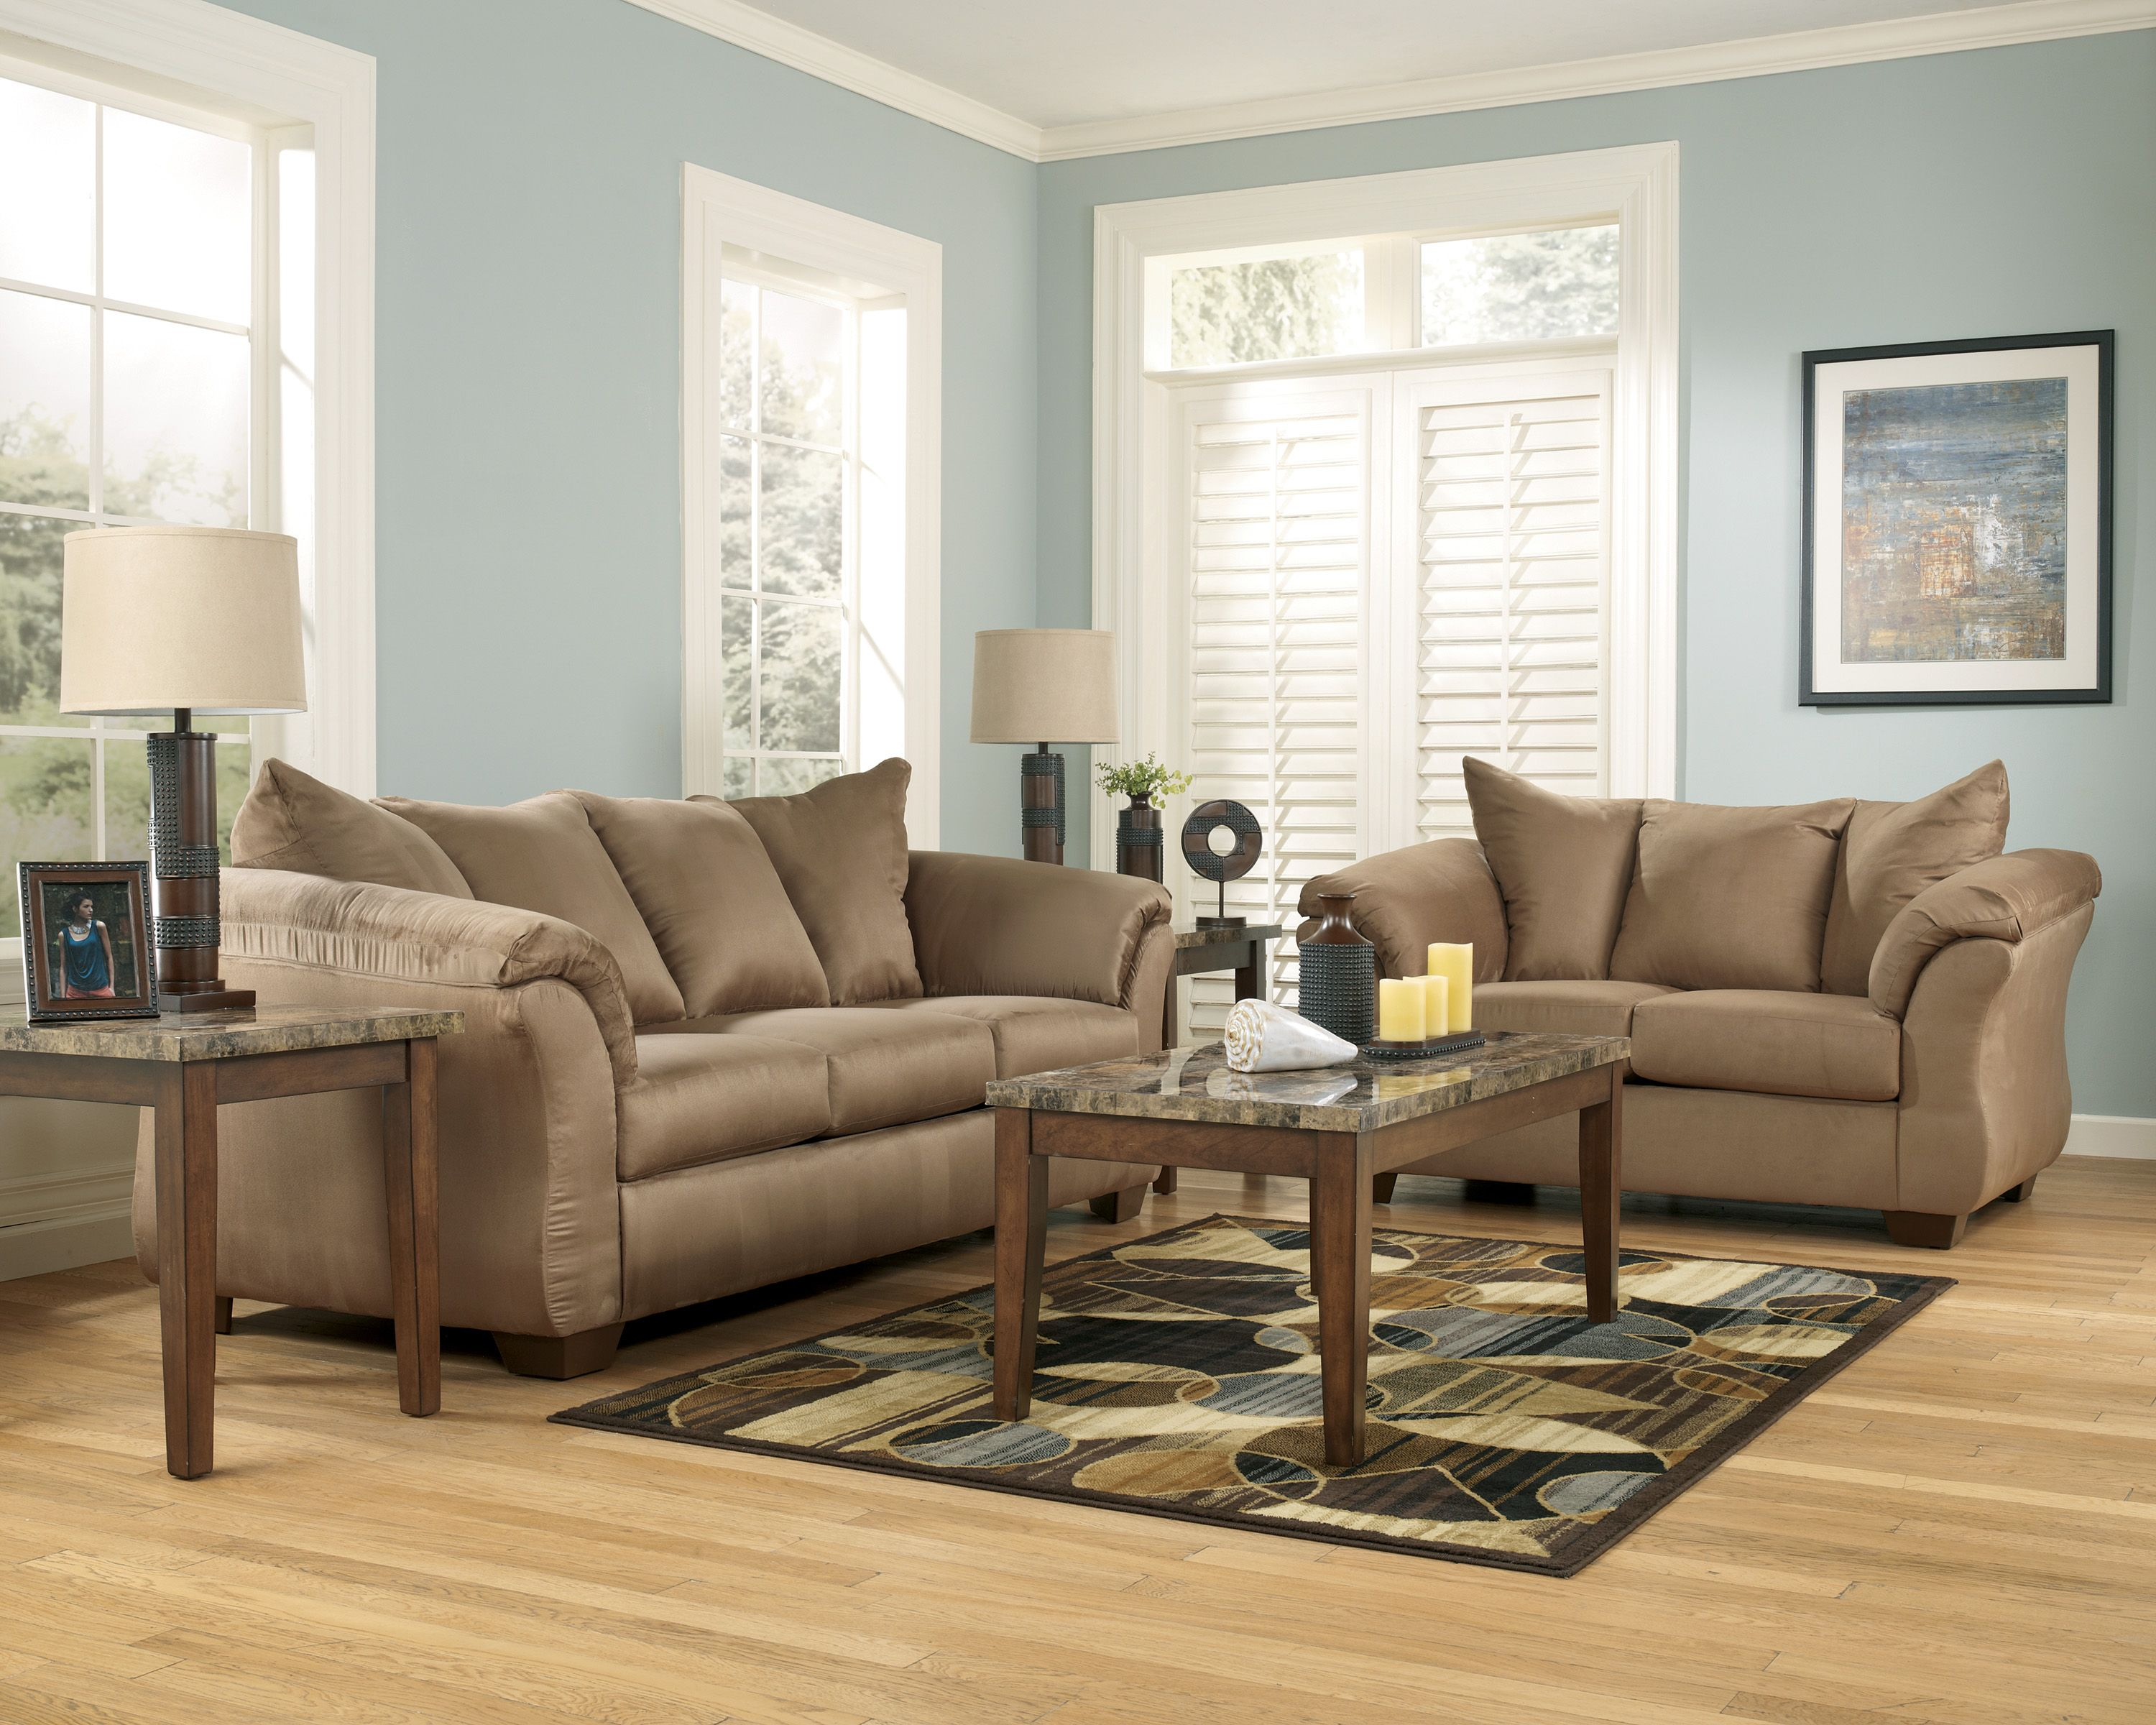 Used Living Room Furniture For Used Furniture Near Me Rustic New York Used Patio Furniture Used